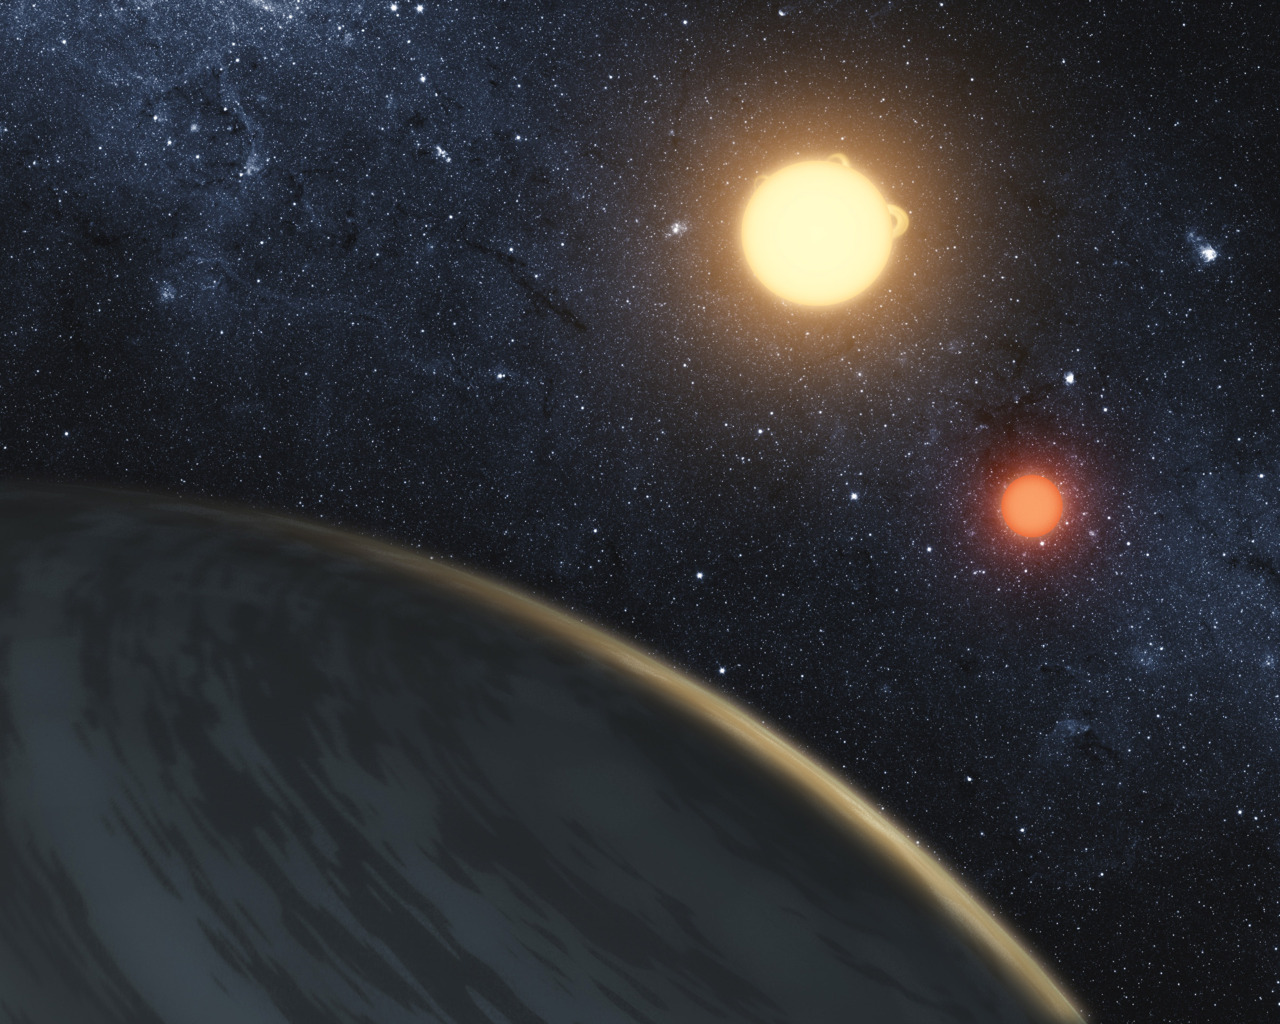 nationalpost:  Astronomers discover 'Star Wars planet' with two sunsAn astrological discovery that would make Luke Skywalker a little homesick is making waves this week — a faraway planet has been found to have two suns.A team of experts used the NASA Kepler space telescope to discover the planet, which orbits around two large stars — similar to Tatooine, the fictional home of Skywalker in the Star Wars films.In this case, however, the discovery doesn't get the Hollywood treatment in terms of a name.Its name is the far more prosaic Kepler-16b.